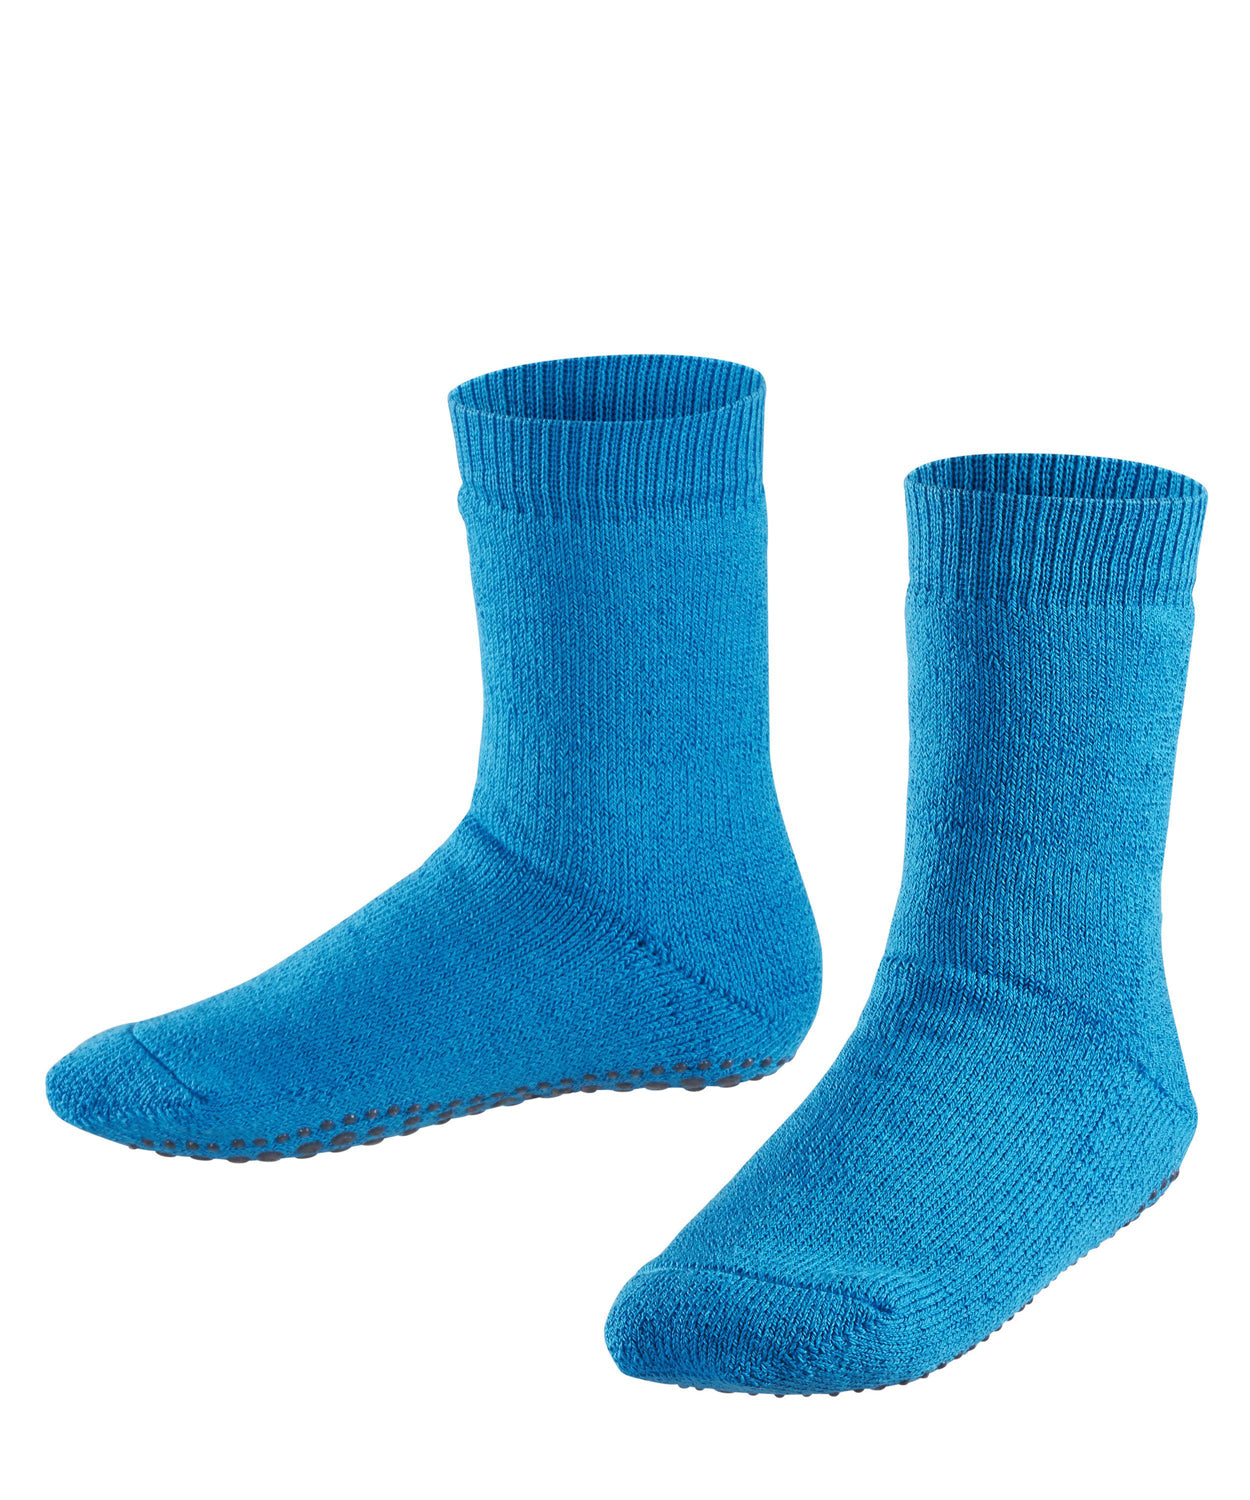 Falke Kids Slipper Socks - Regatta Blue